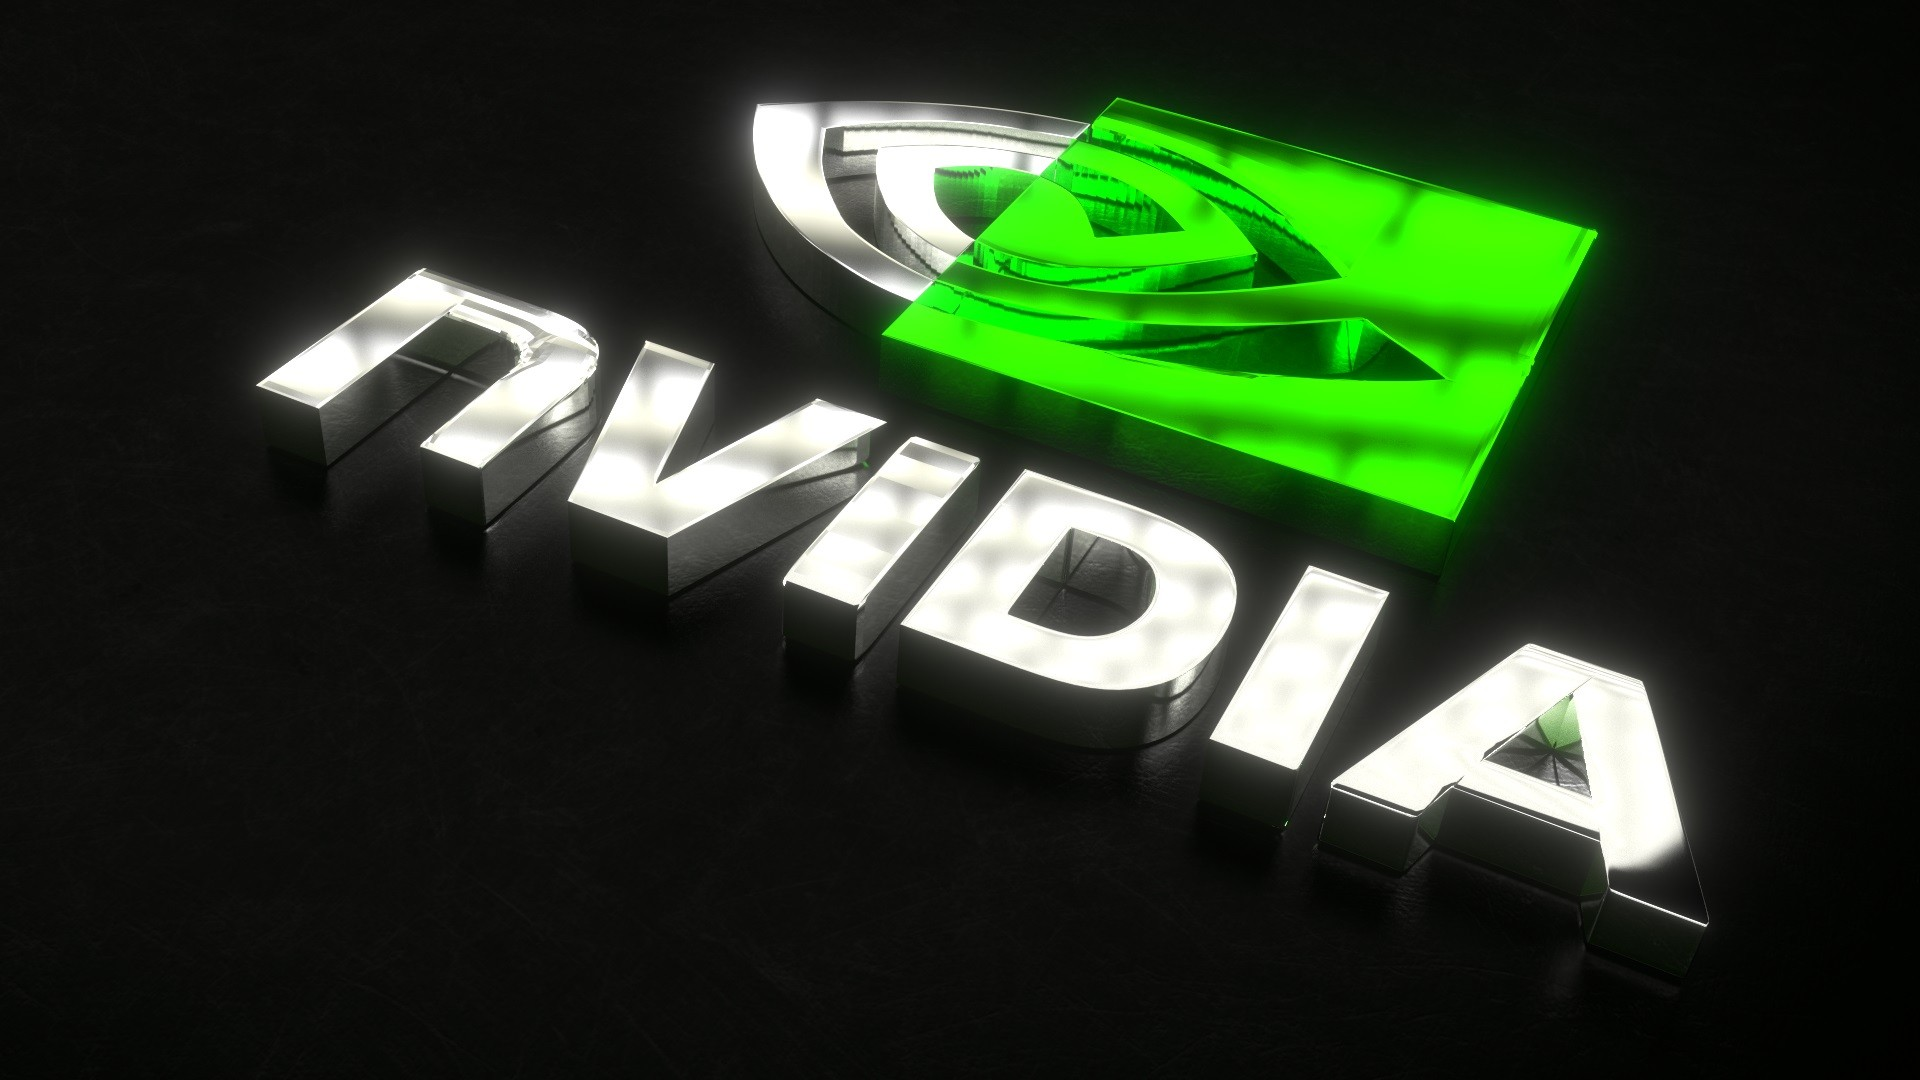 Is Momentum Building For Nvidia Corp (NVDA)? Aroon Oscillator Trending Higher